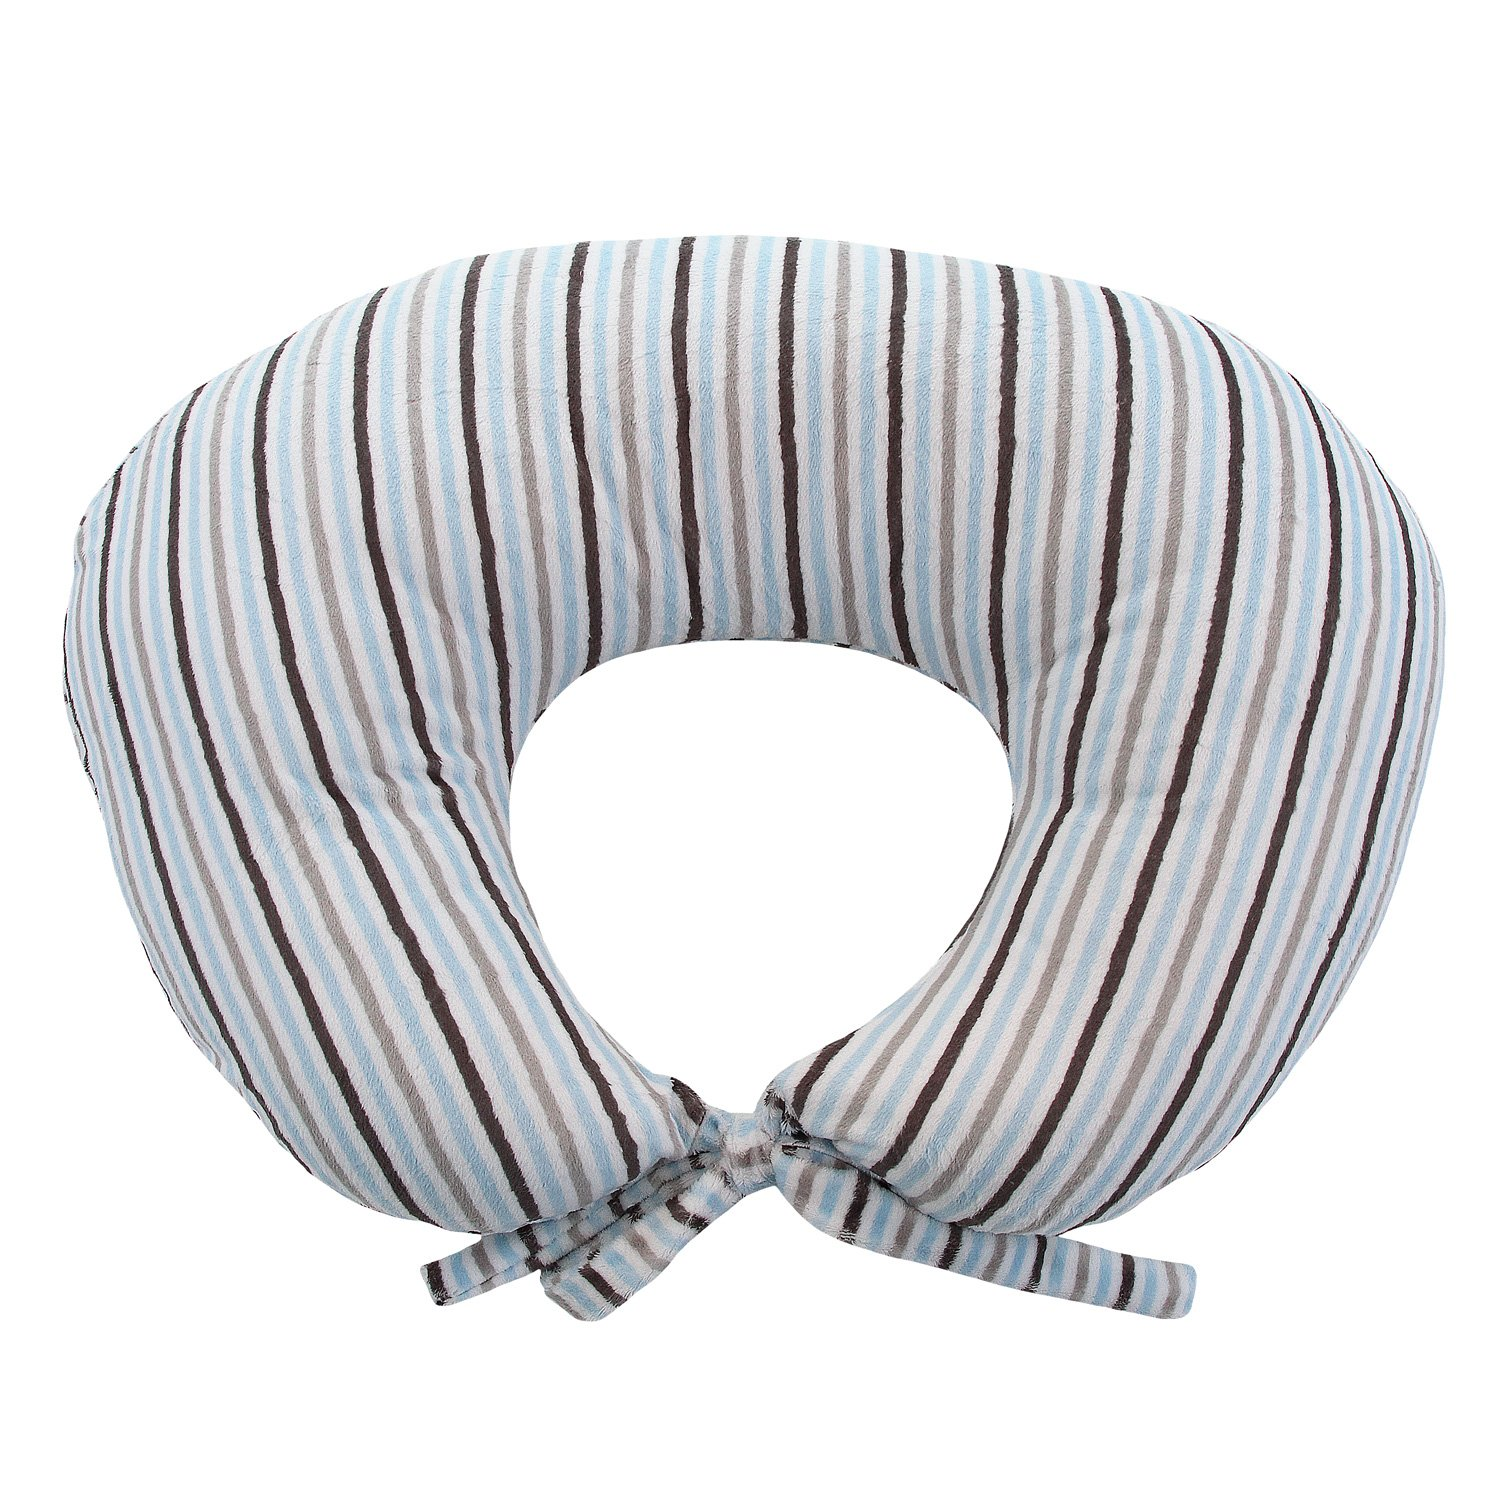 My Blankee Nursing Pillow with Mini Stripe Minky Slipcover, Blue/Silver, Large/X-Large